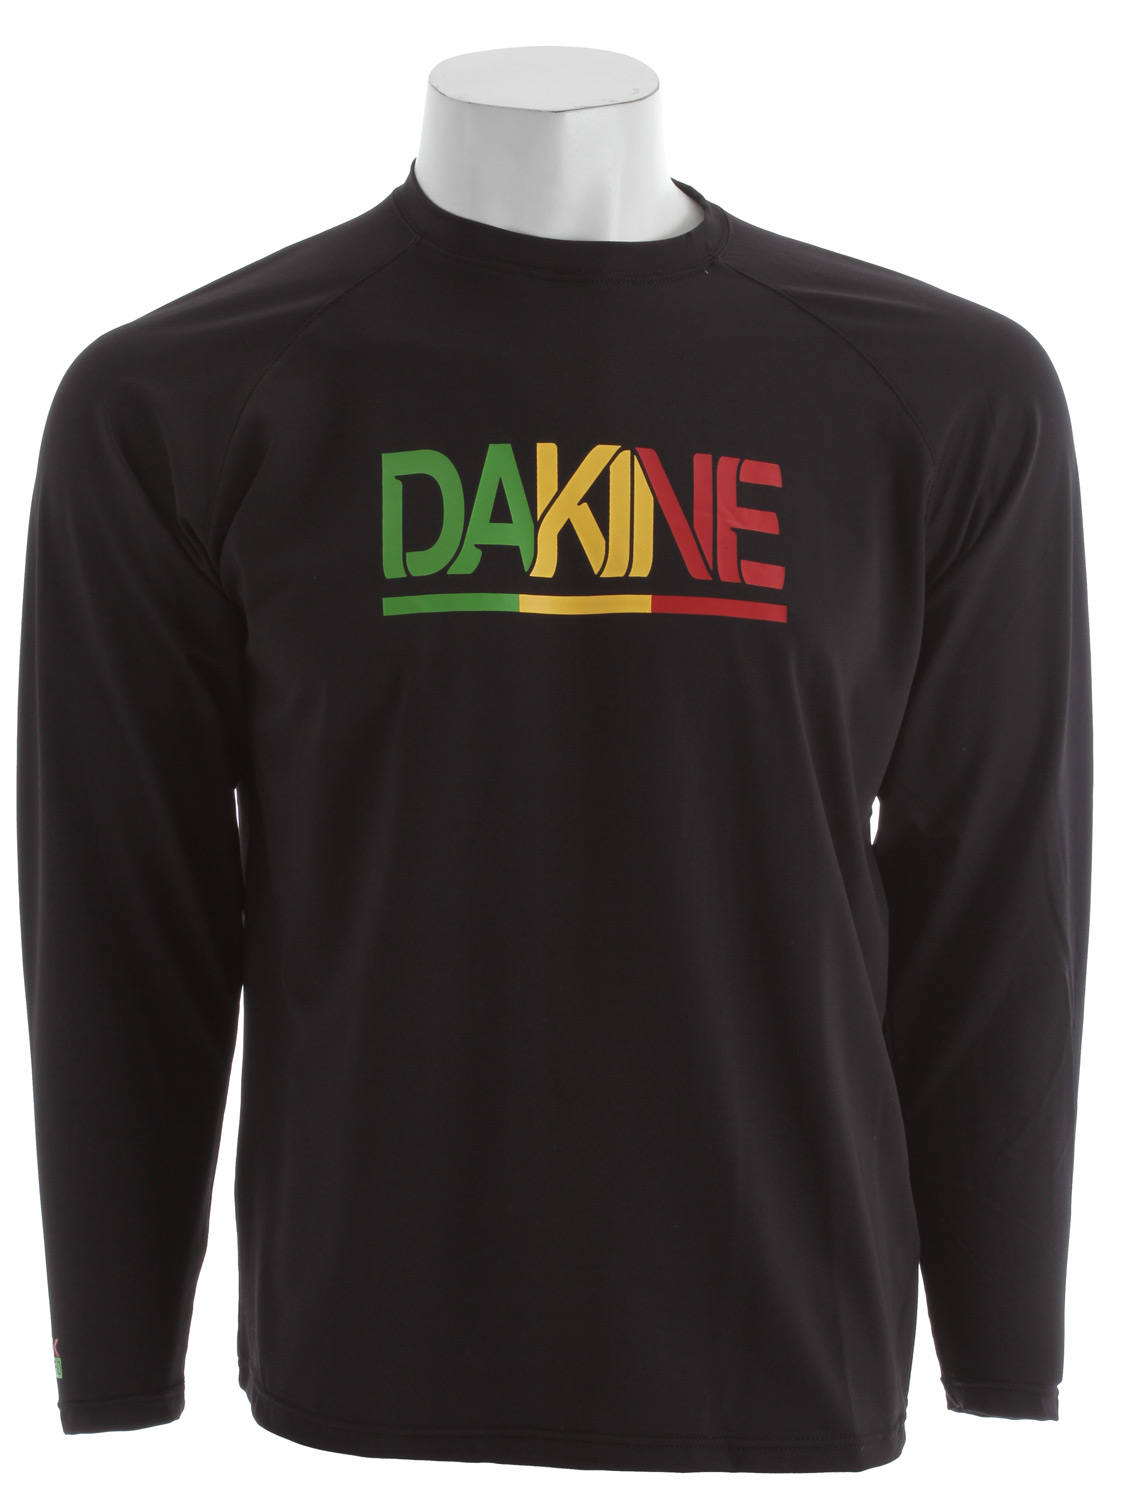 Surf Dakine Waterman L/S Shirt Black - $27.95